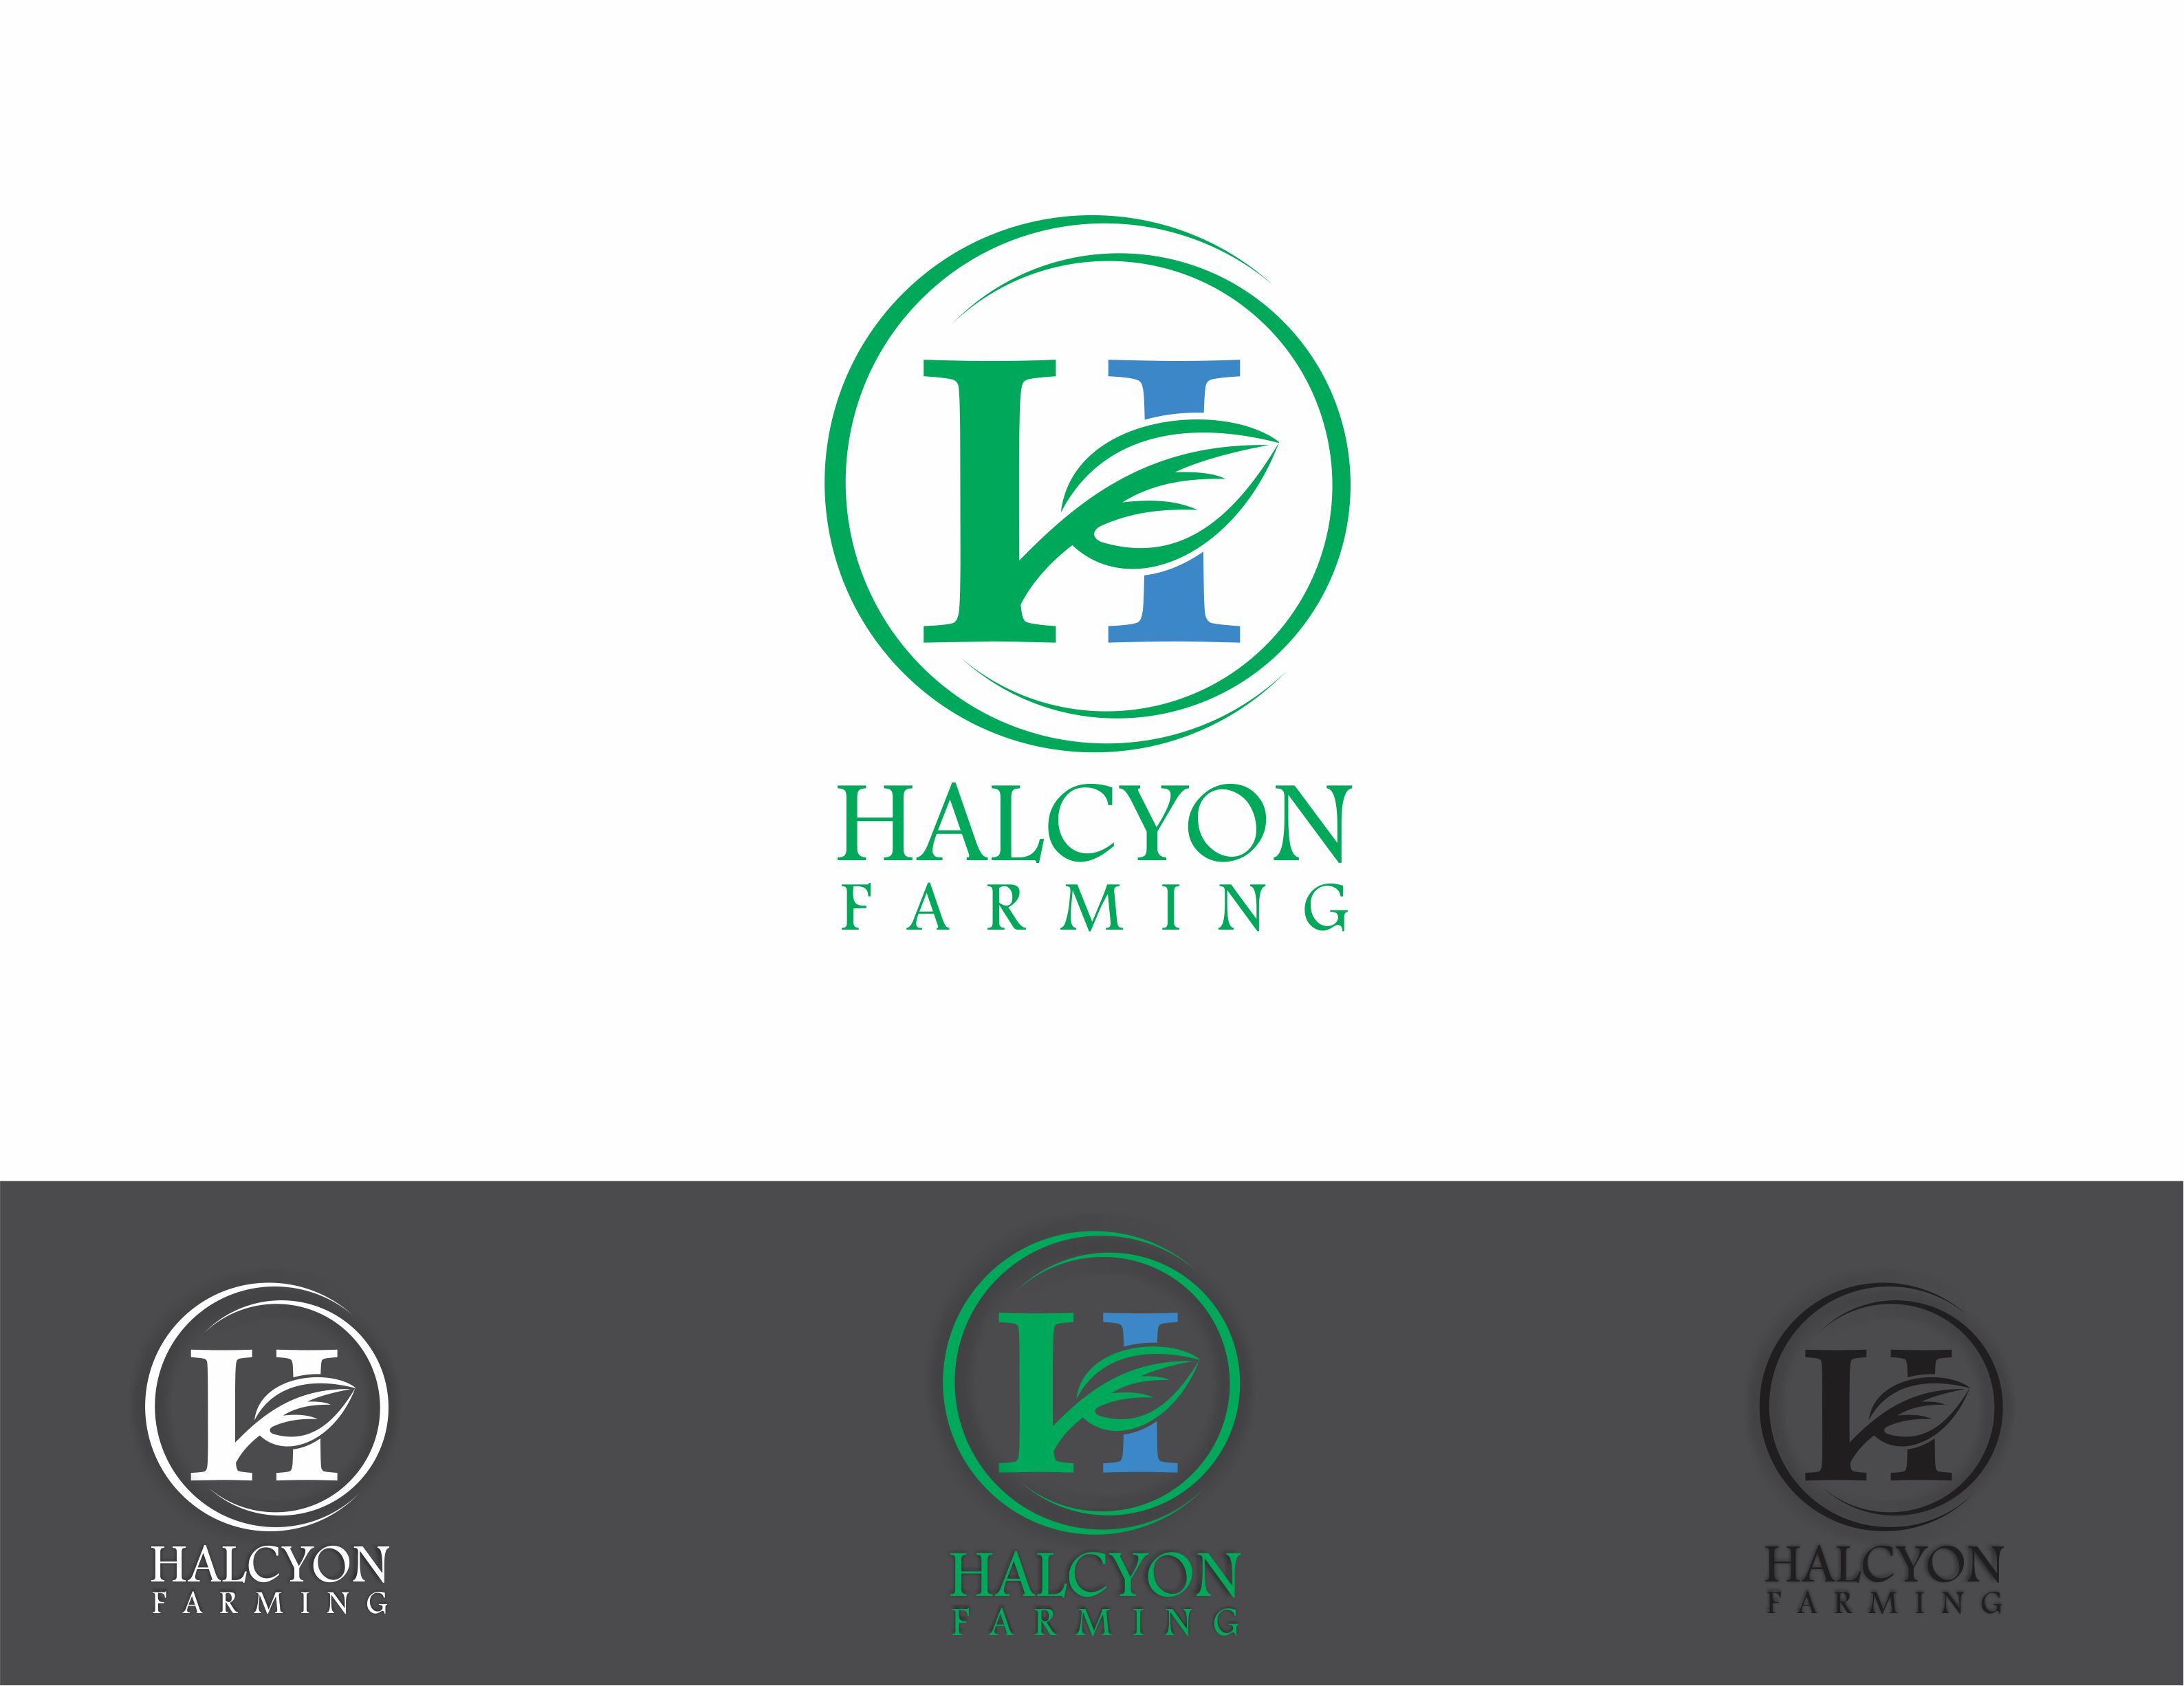 Logo Design by Dian Jatmiko - Entry No. 103 in the Logo Design Contest Creative Logo Design for Halcyon Farming.